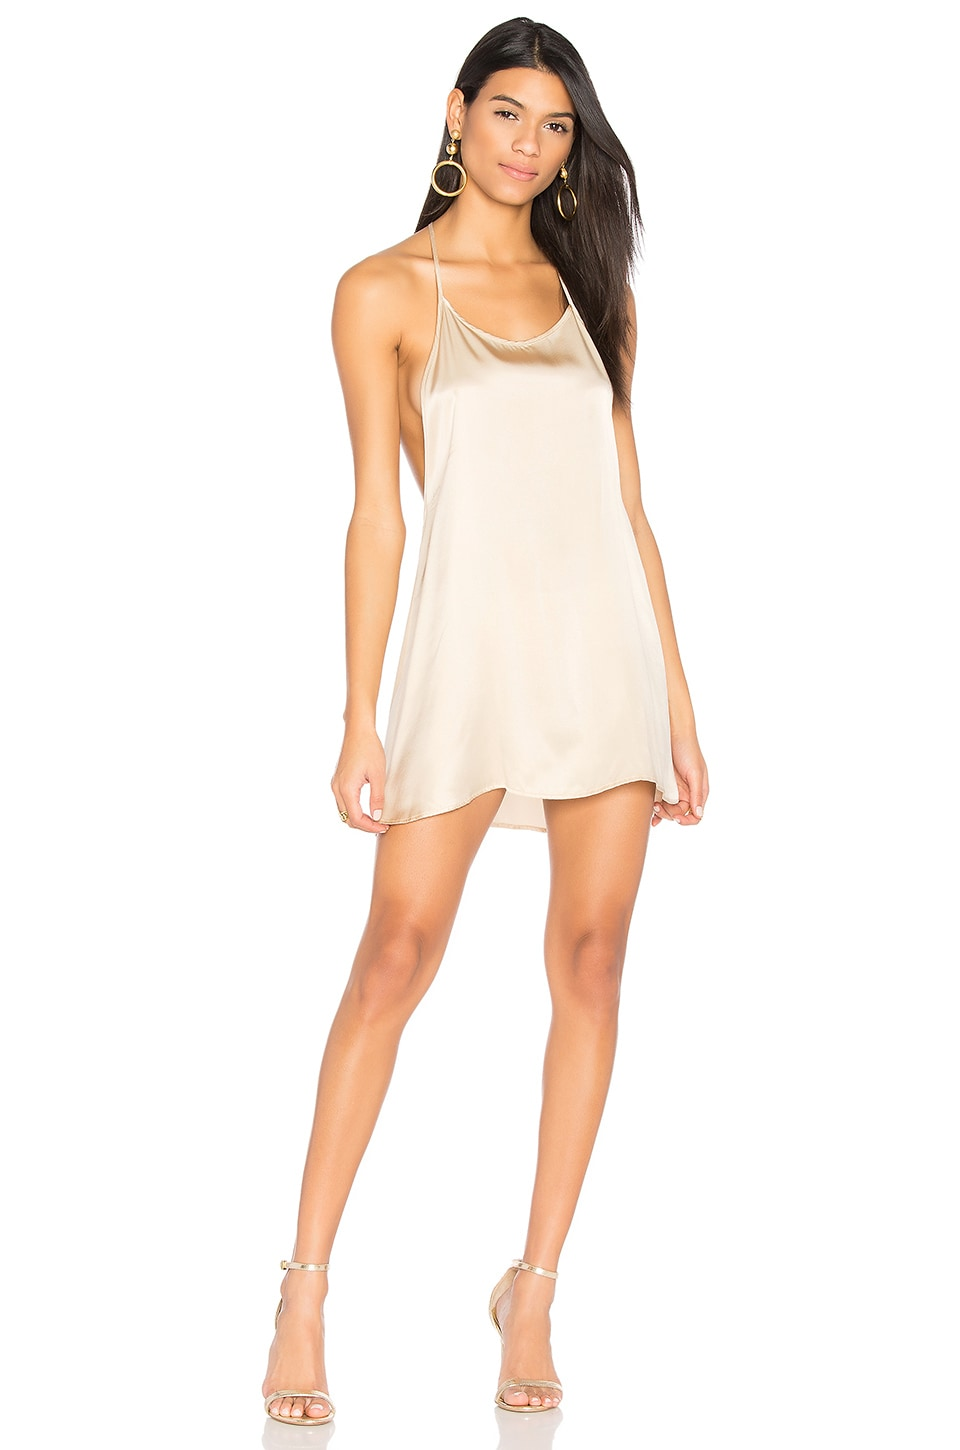 JOAH BROWN Silk T Back Dress in Champagne